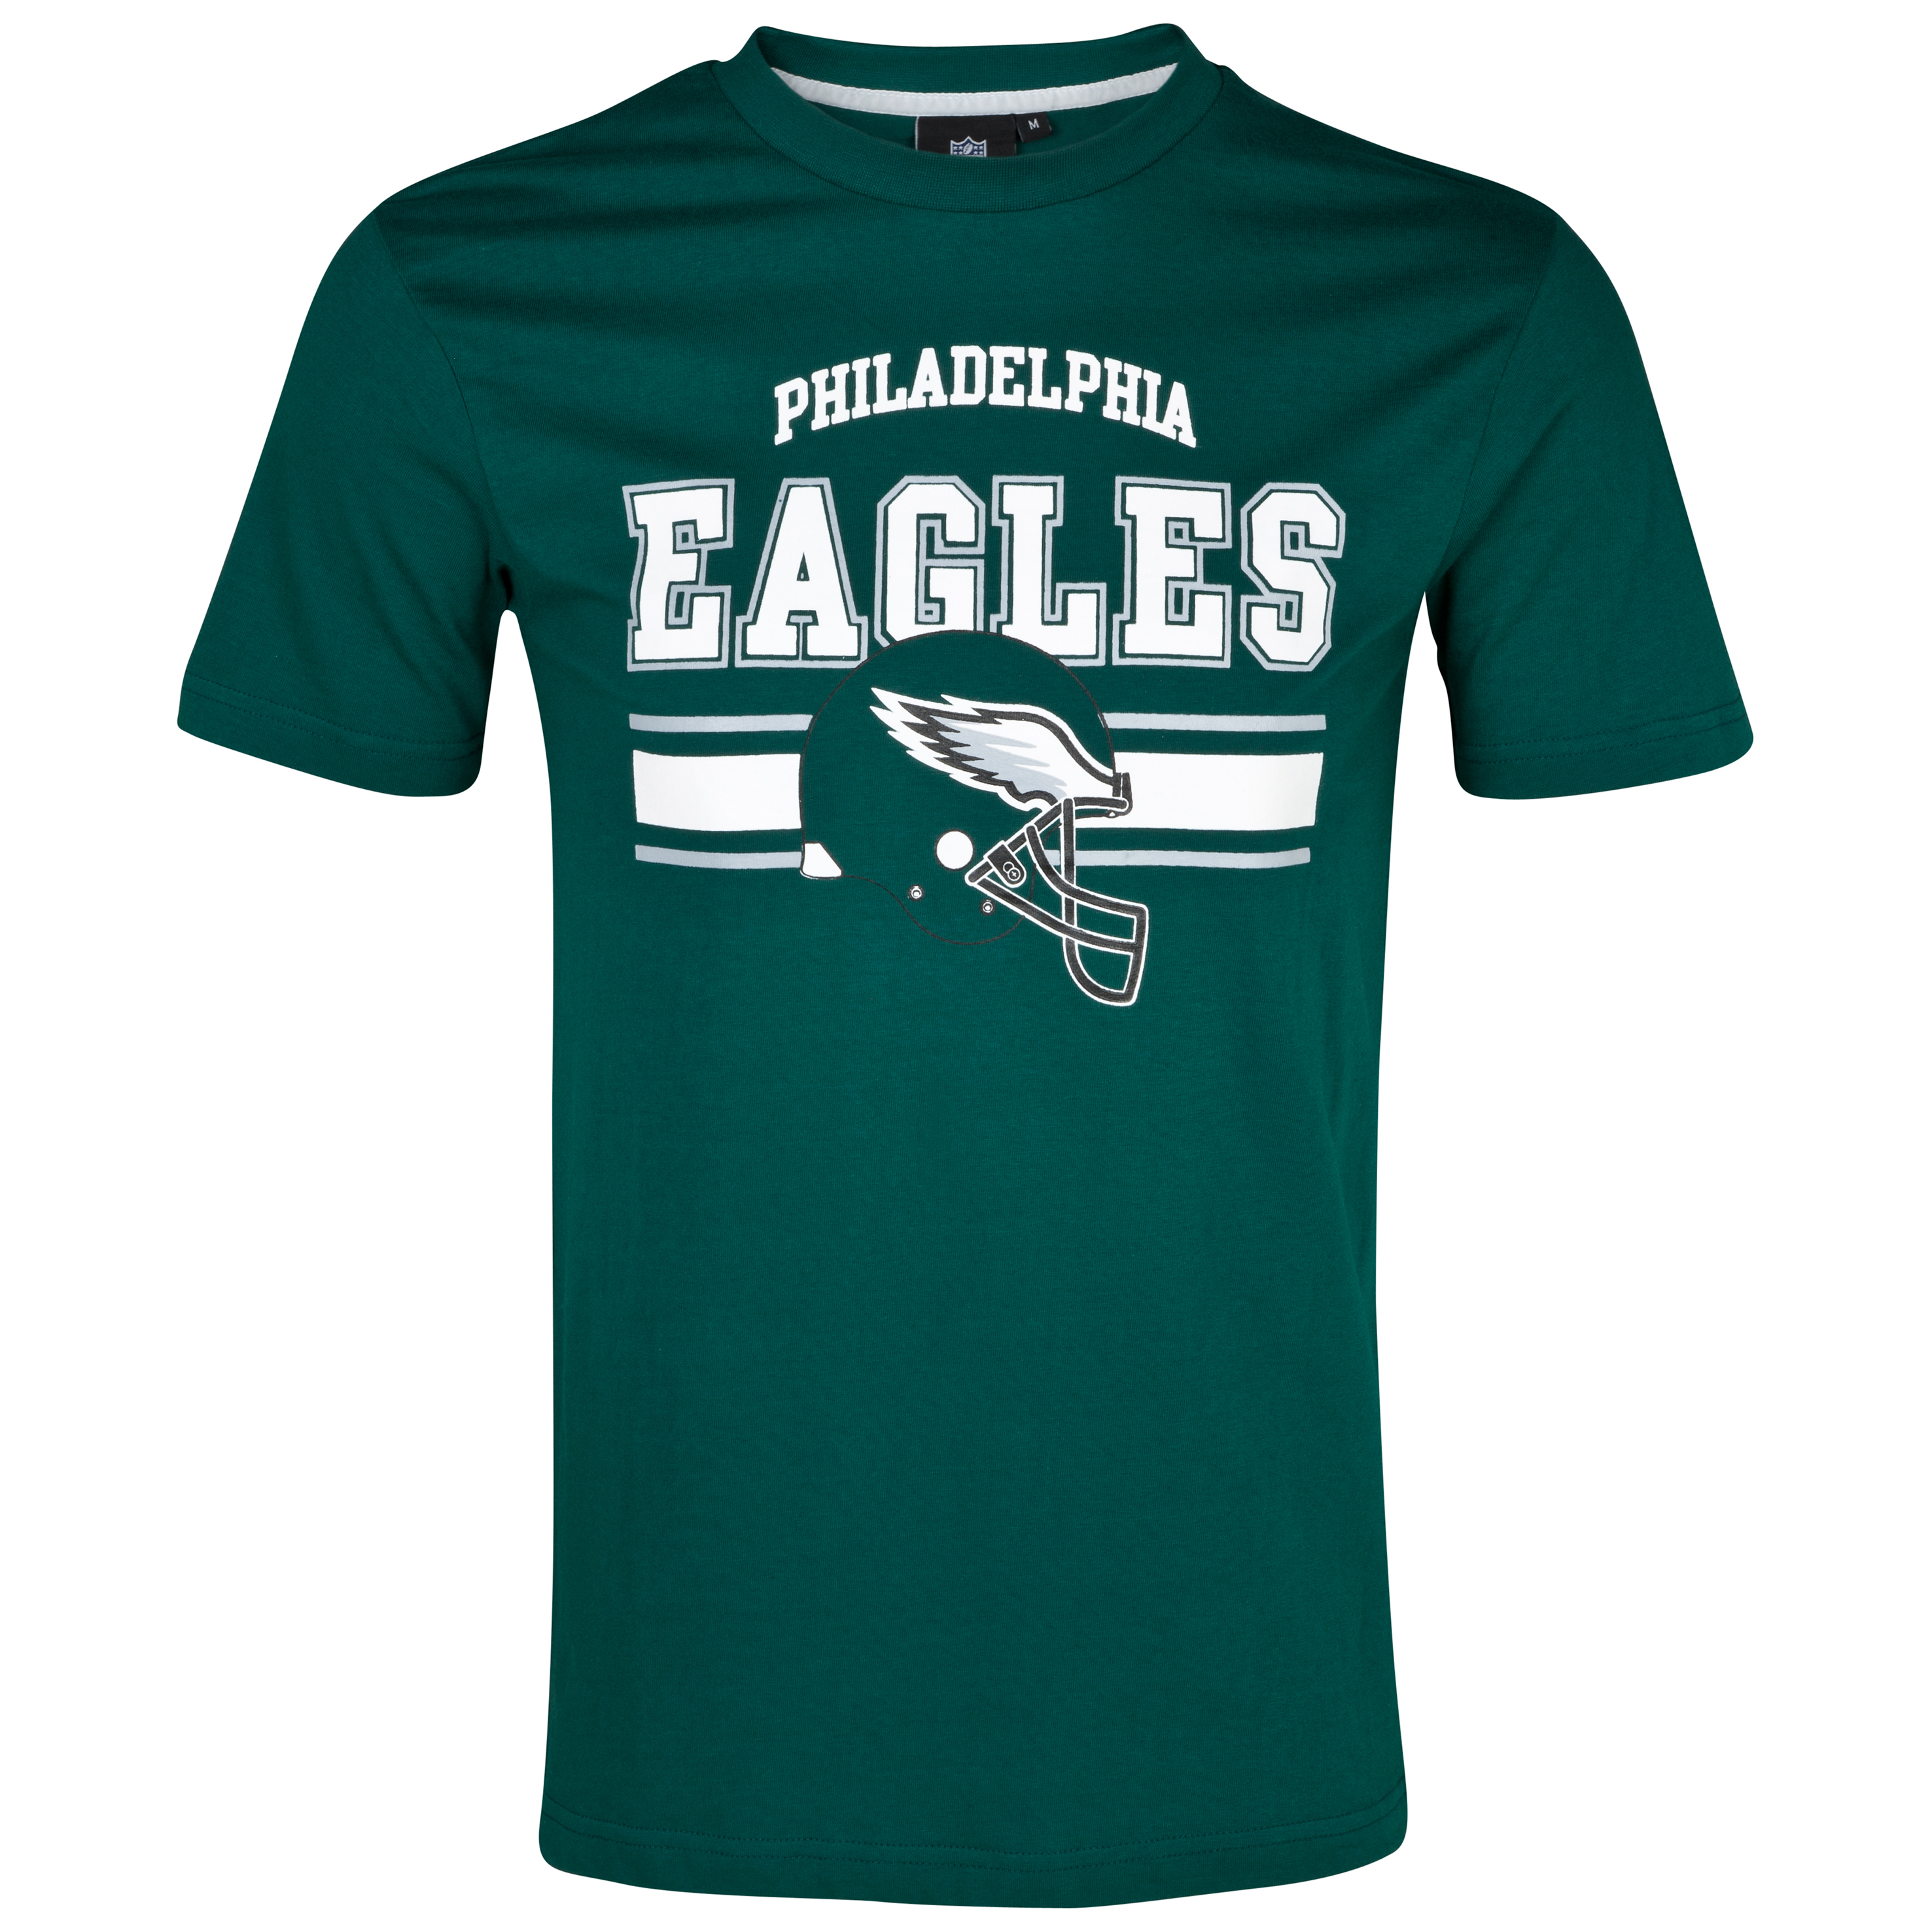 Philadelphia Eagles Karweg T-Shirt